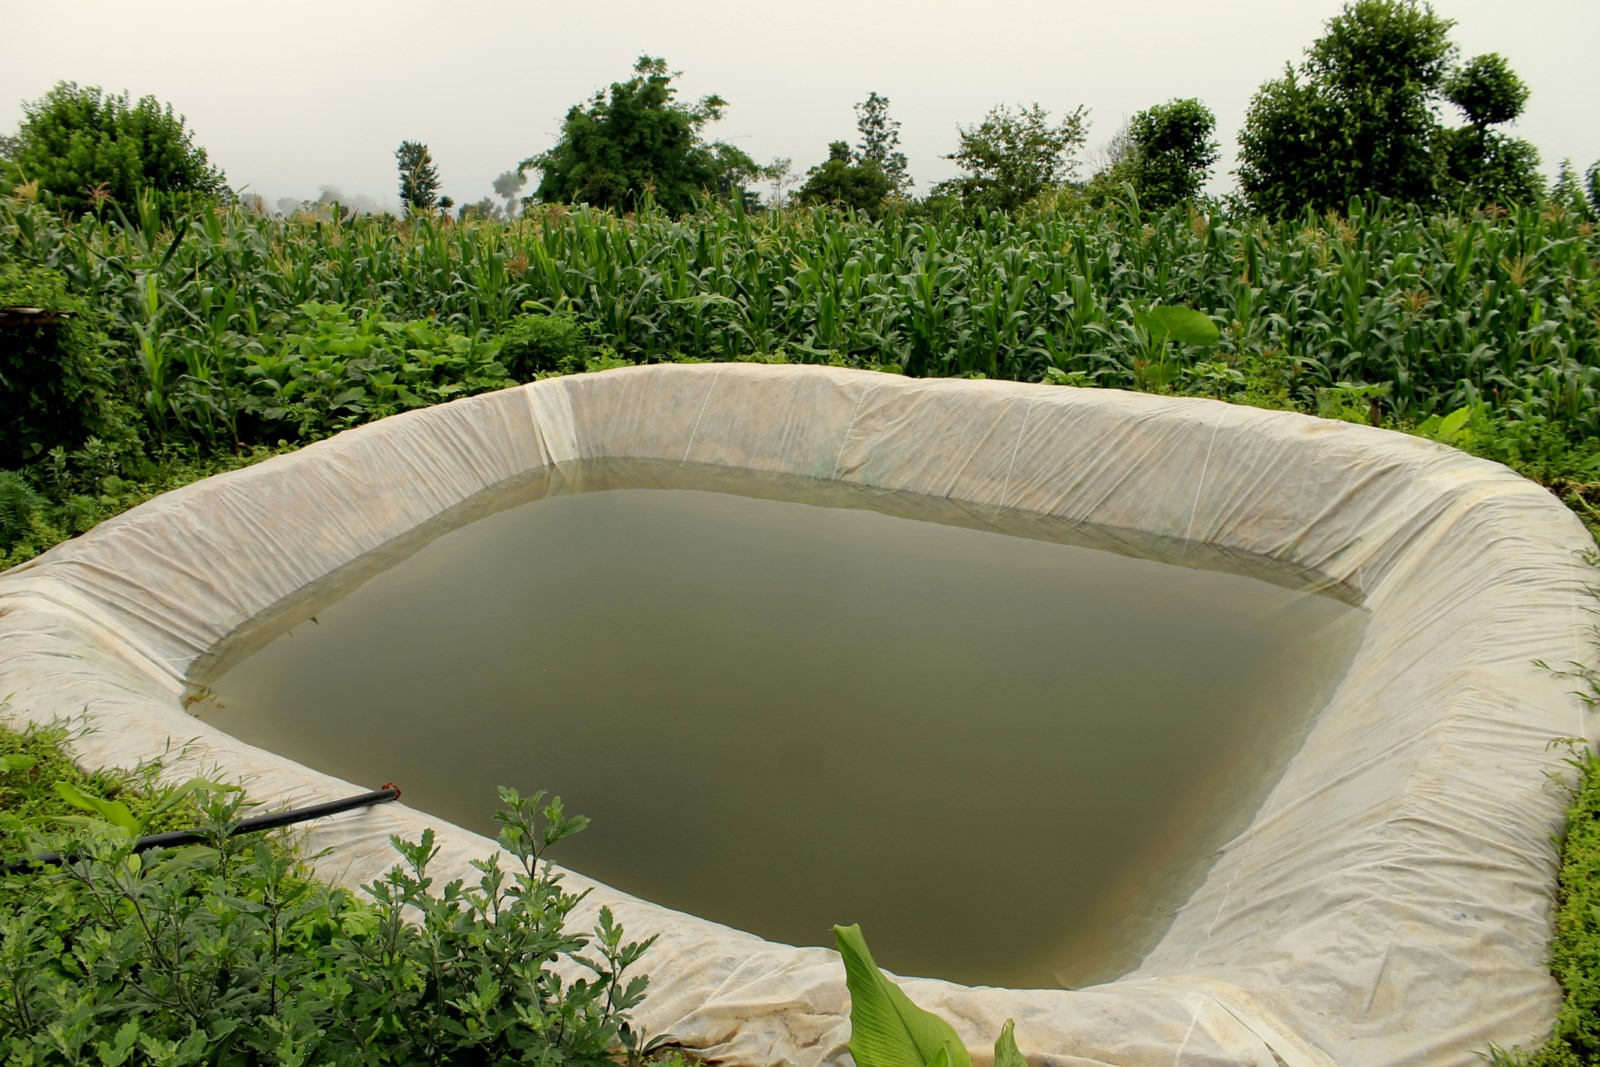 file rainwater harvesting and plastic pond jpg  file rainwater harvesting and plastic pond 2 jpg